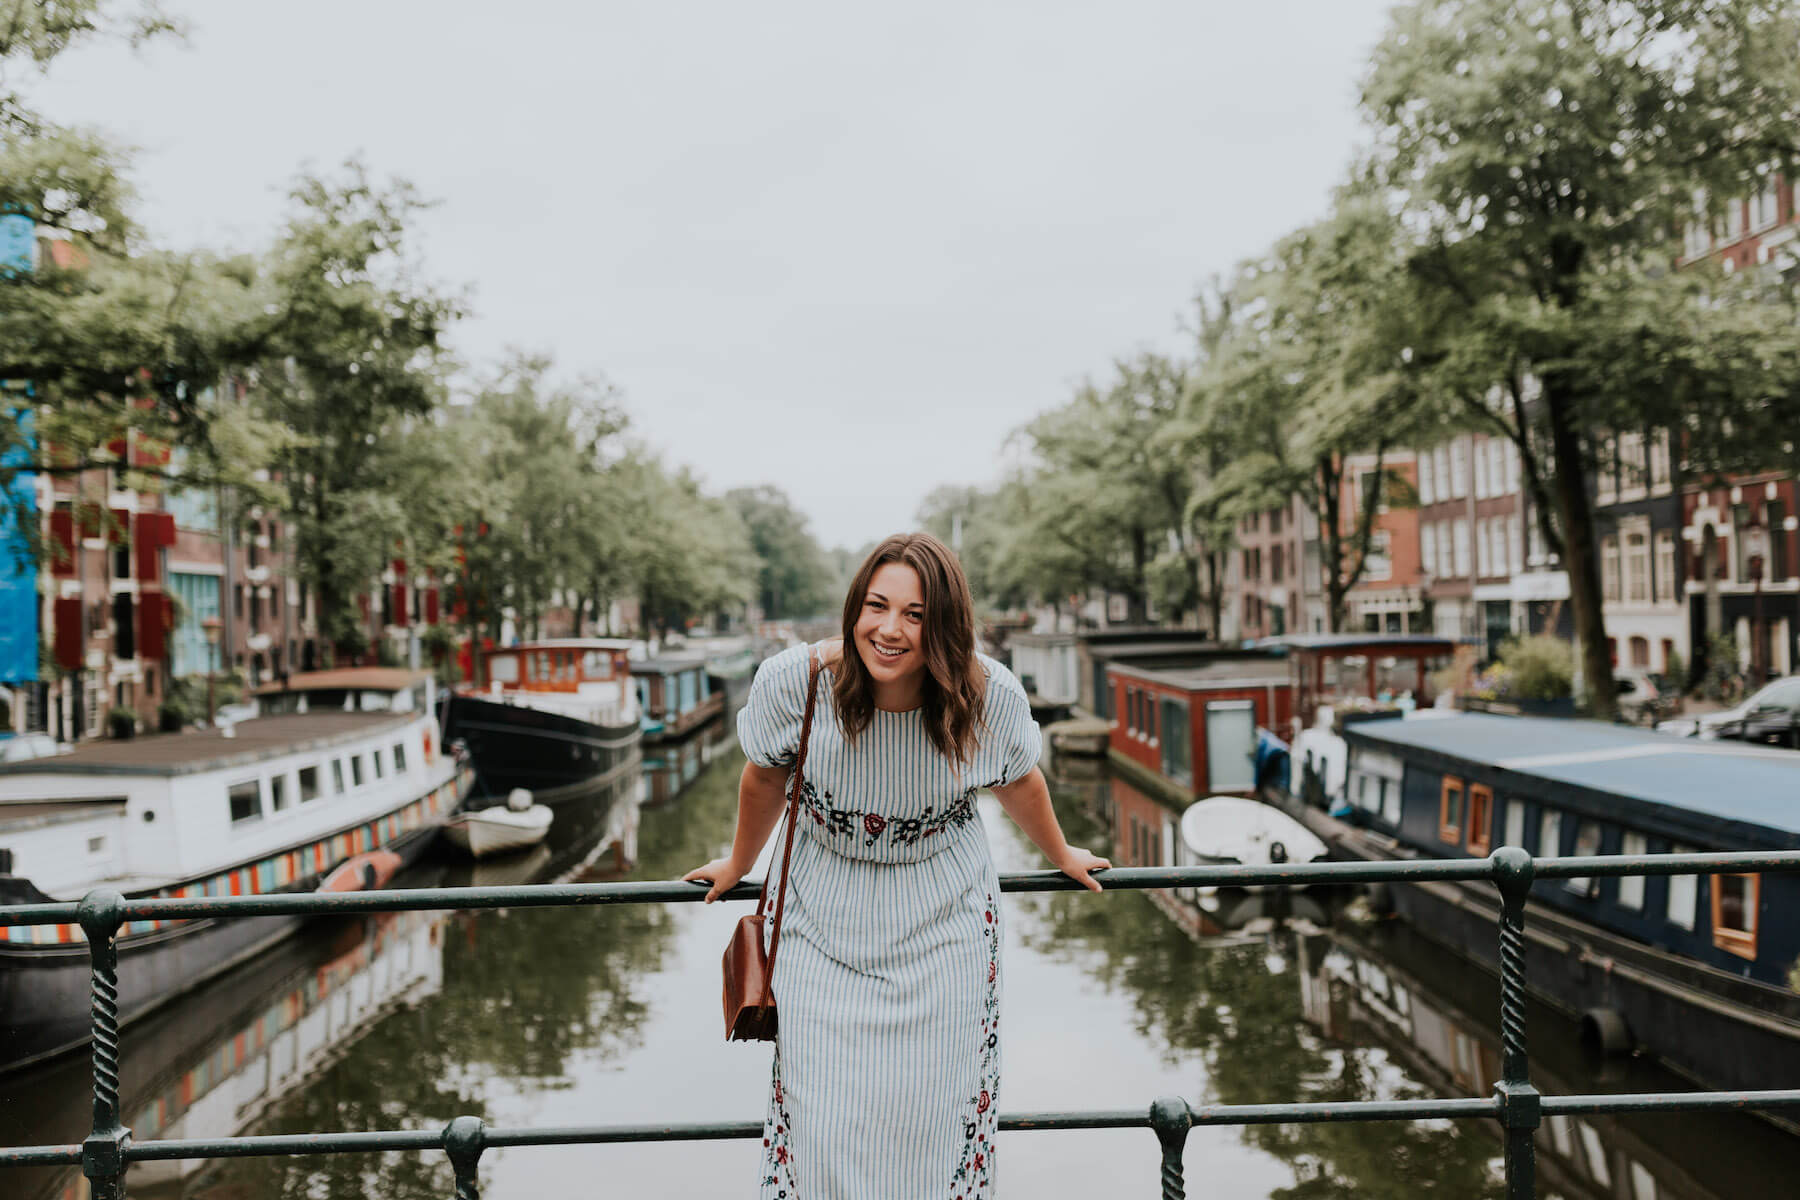 Solo woman traveler on a bridge in Amsterdam, Netherlands